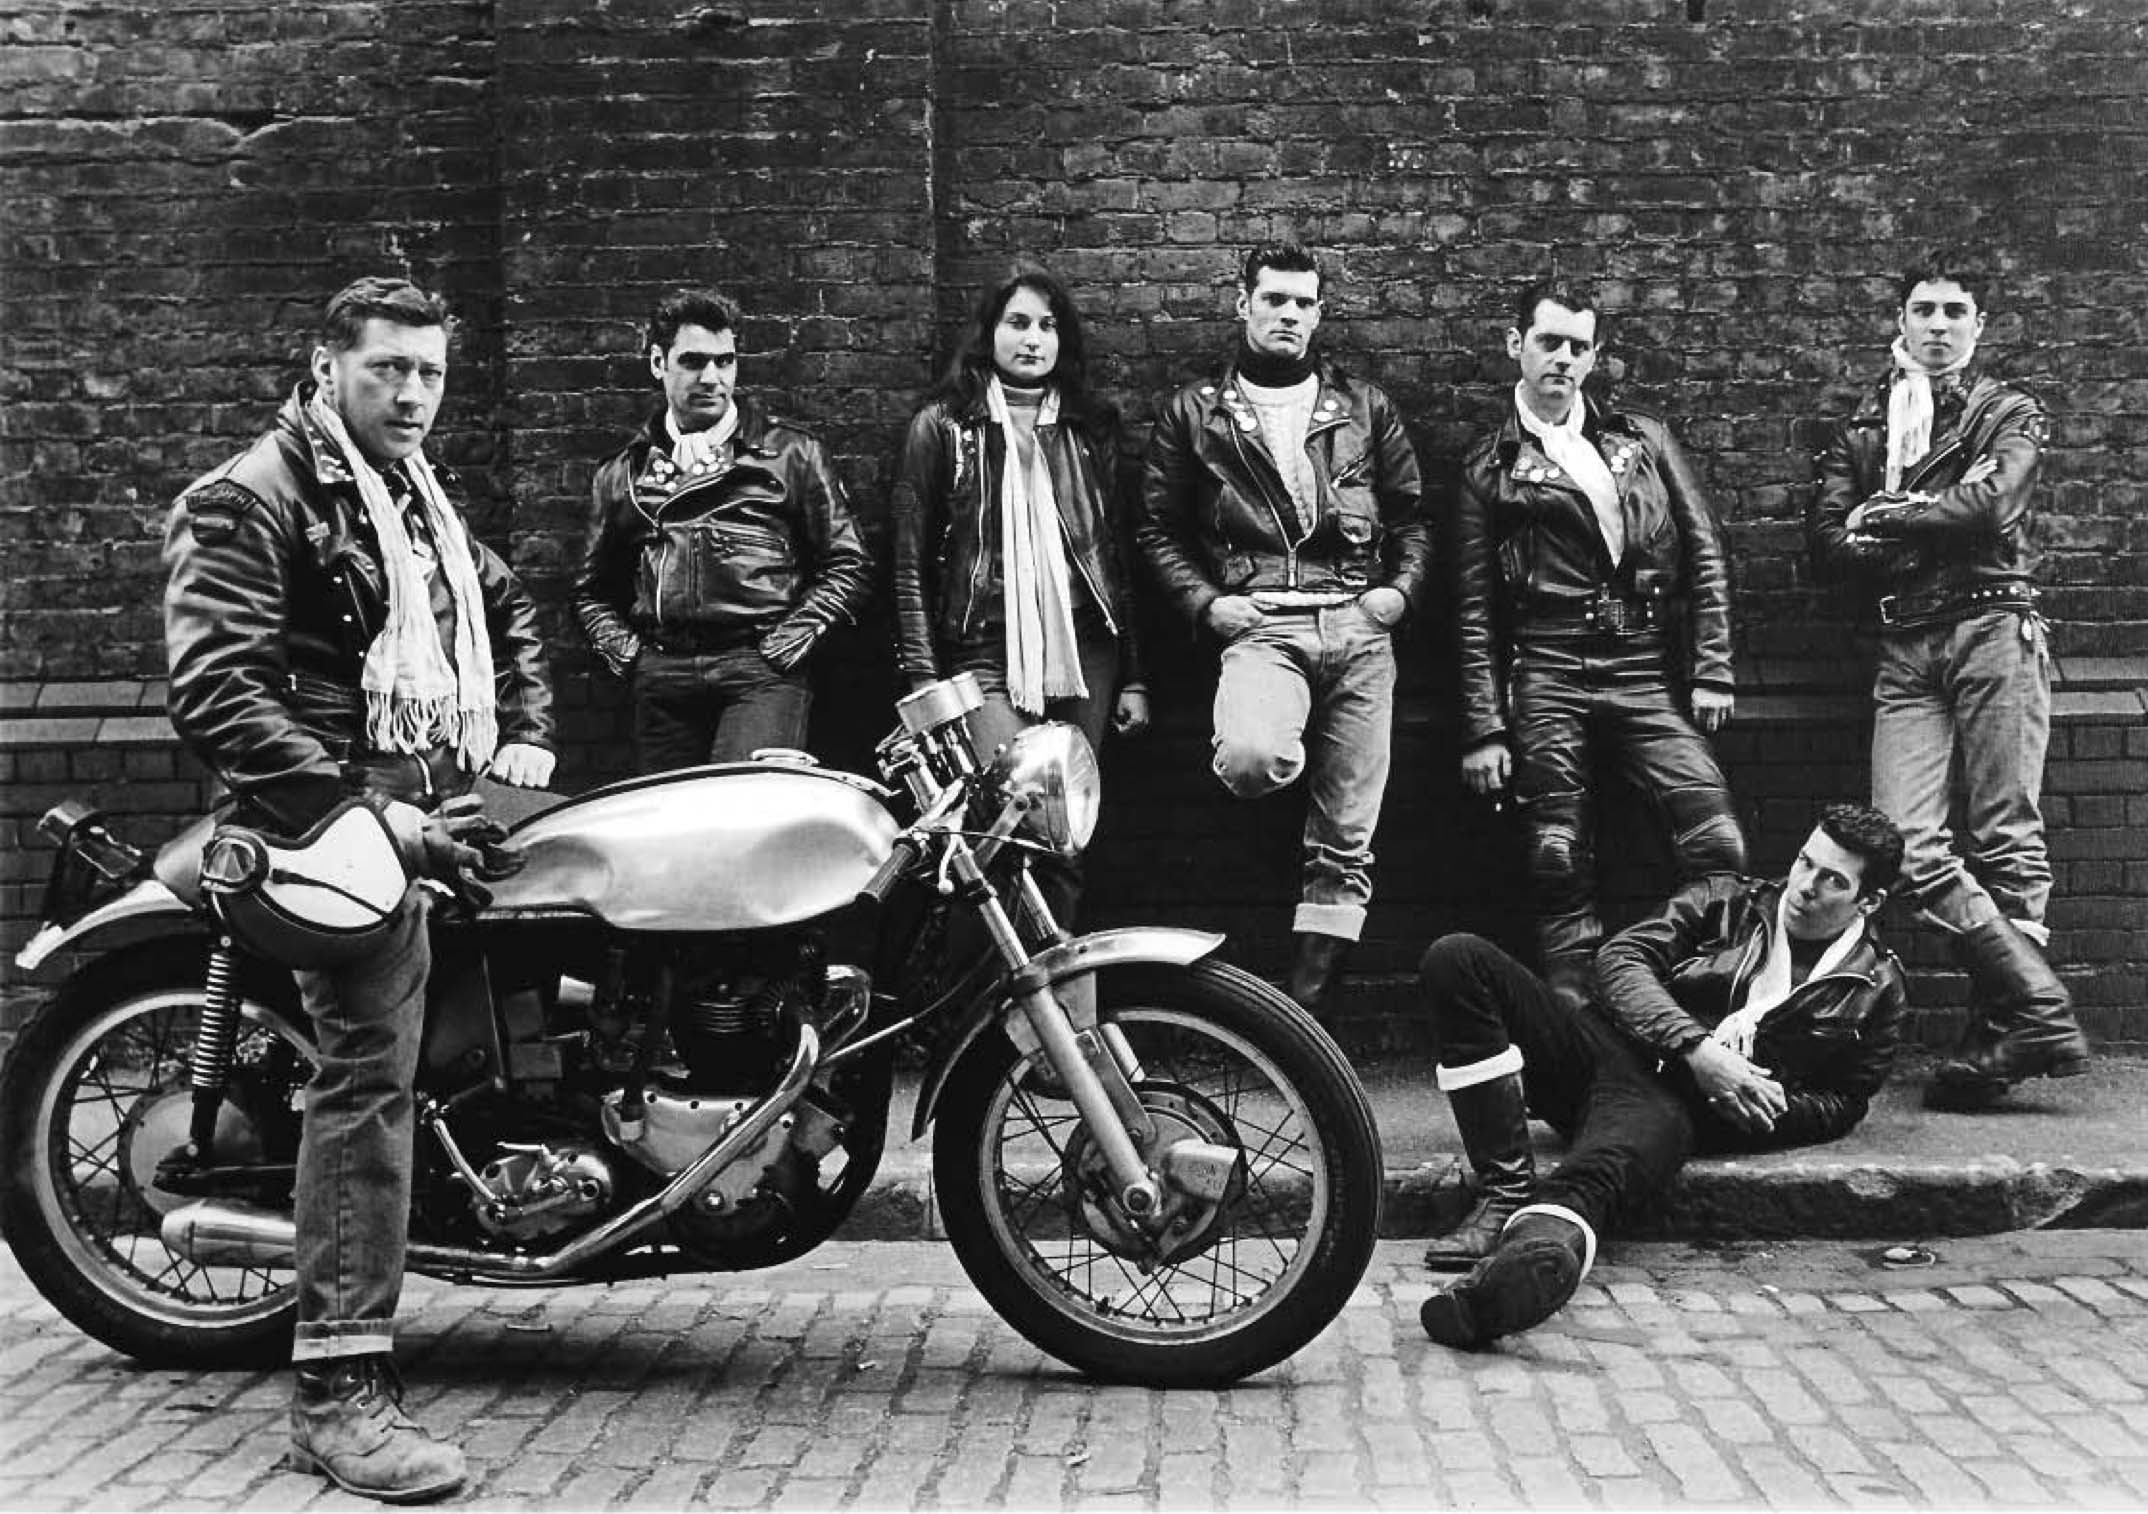 PHOTO from 'Rockers' by Horst Friedrichs